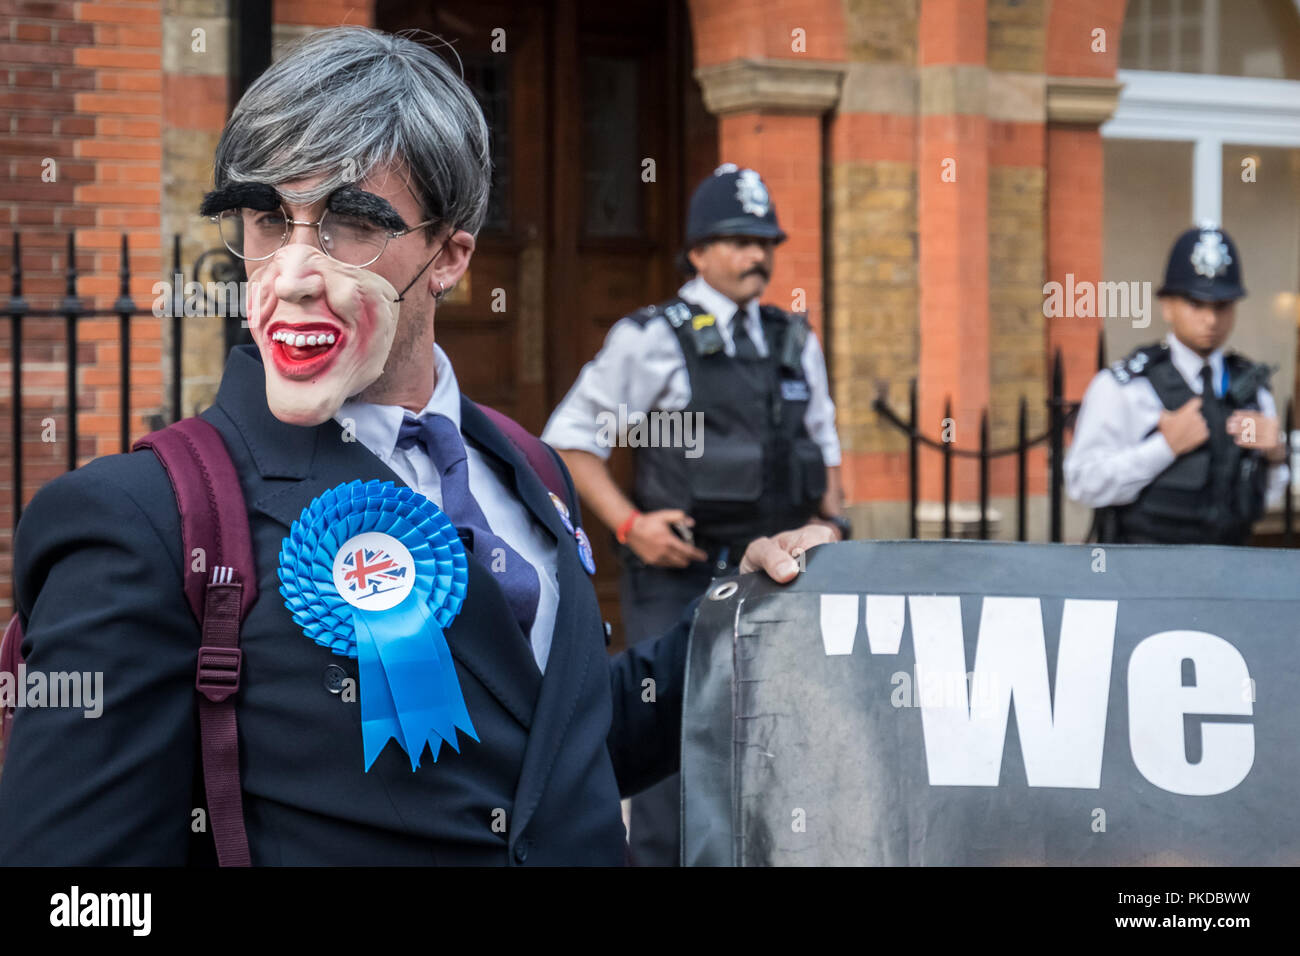 Jacob Rees-Mogg and his family are confronted by anti-capitalist protesters from Class War activist group outside his Westminster home. London, UK. - Stock Image